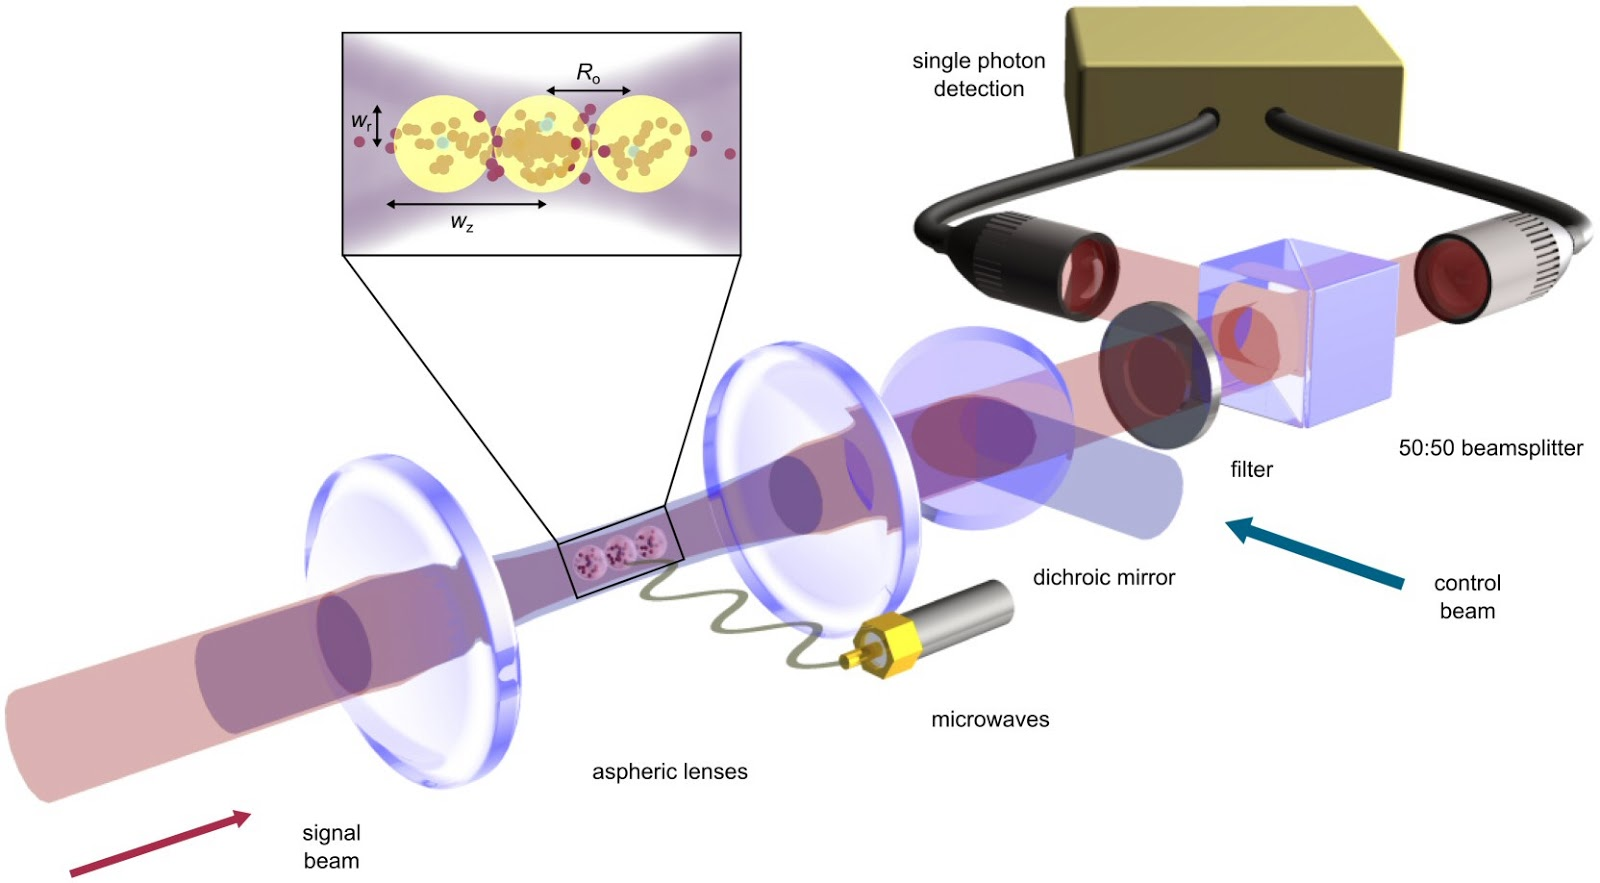 2Physics: Storage and Control of Optical Photons